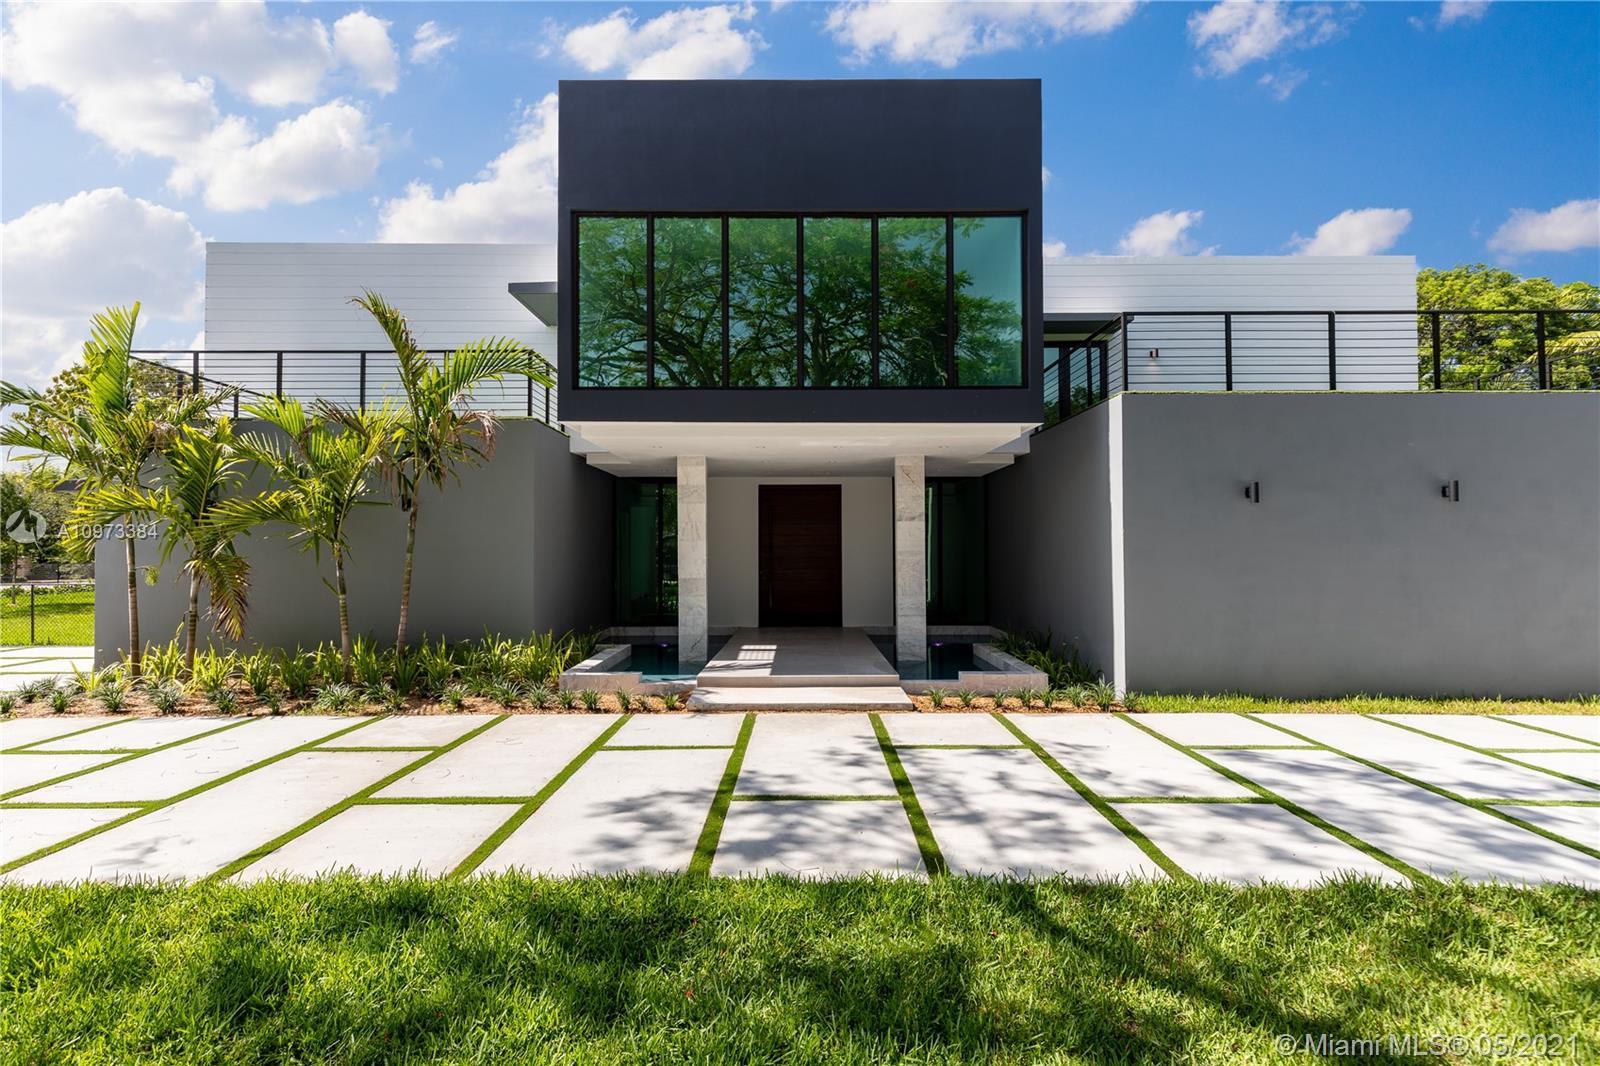 Modern Masterpiece designed by ECO Modern Custom Homes. This 2-story is being constructed in a cozy neighborhood of Pinecrest set to be completed in March 2021. Walk through a solid wood pivot door into an open + airy living area with 20-FT ceilings and porcelain Castellon flooring from Spain. Meticulously built 8,803SF featuring 7BR, 7.5BA, 2 separate car garages, media room, wine cellar, Pedini Kitchen, safe room + office. Entertain guests on this 31,798SF lot with a pool, lush landscape around the perimeter. Equipped smart home all controlled via app from smartphone.